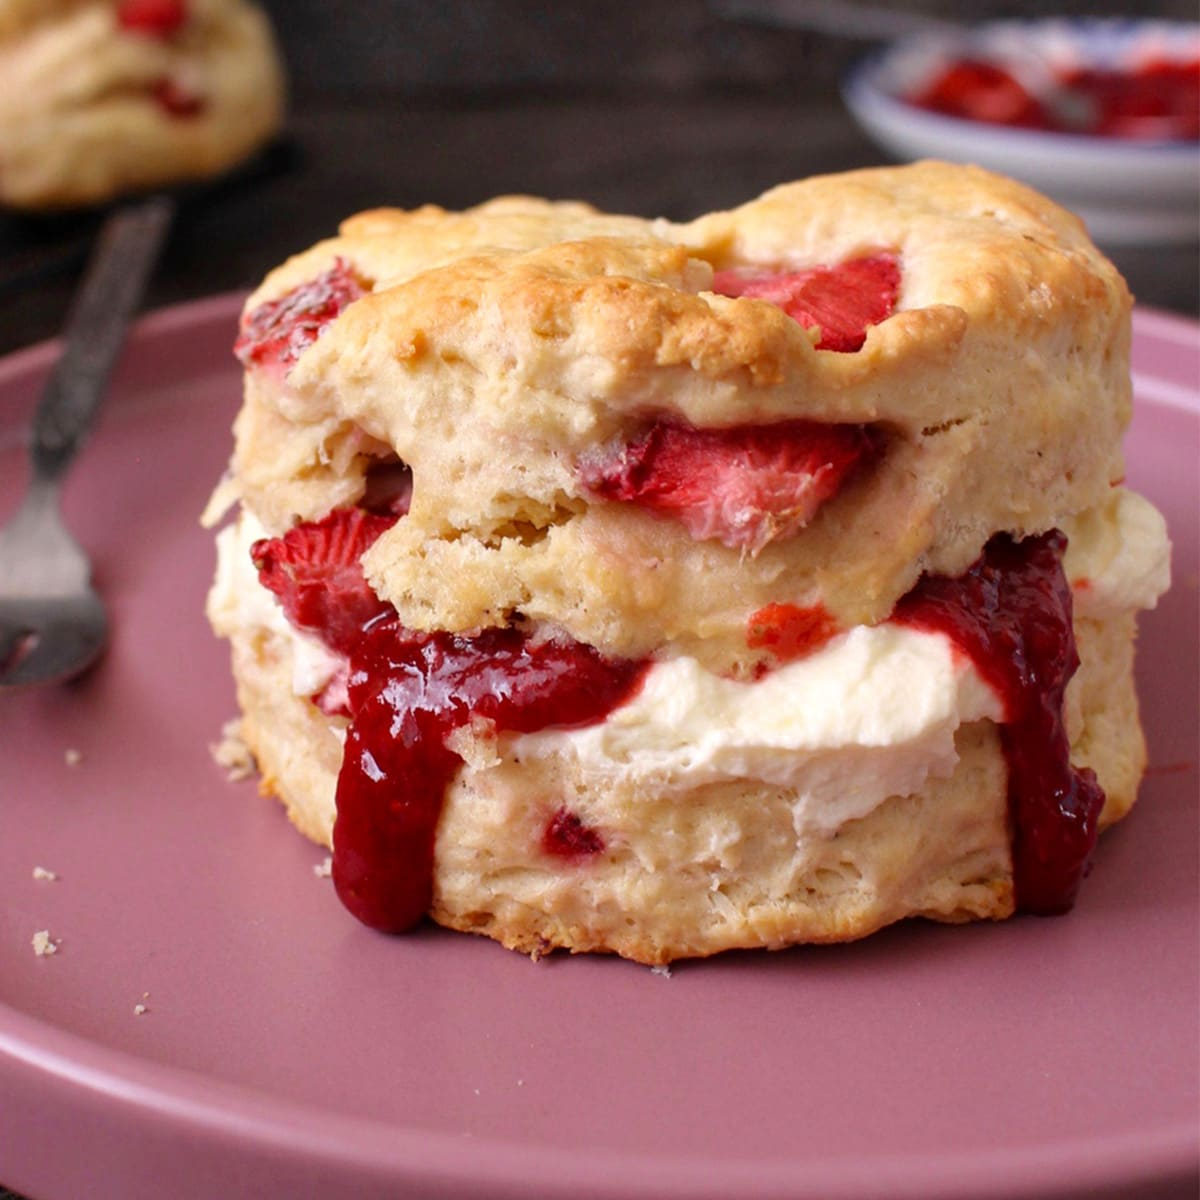 One scone filled with cream and jam over a pink plate